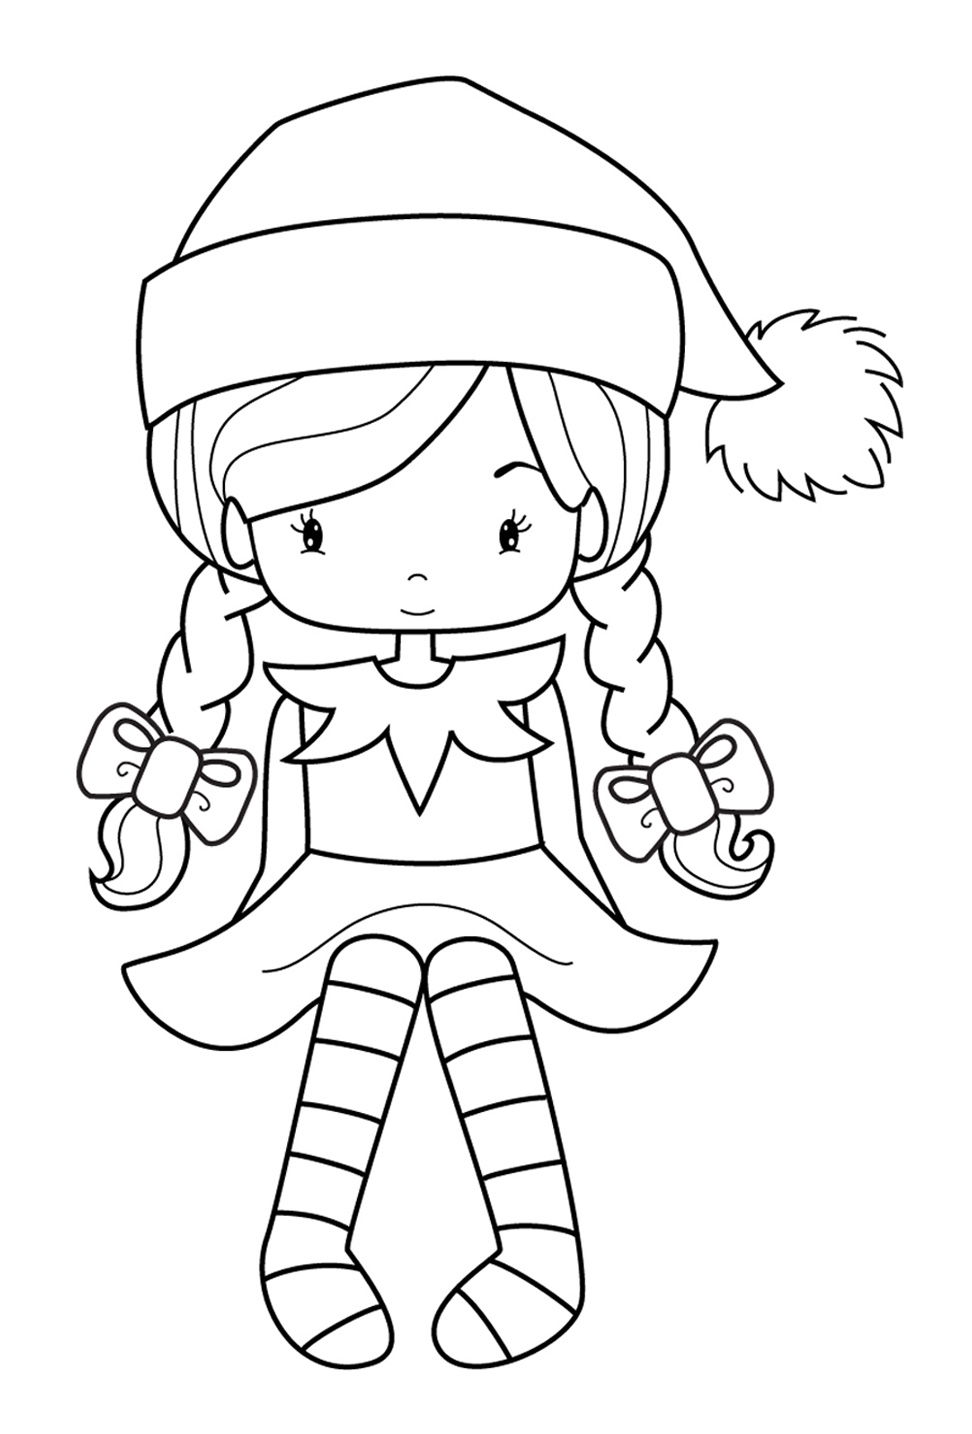 Elf Coloring Pages Printable 28 Elf Coloring Pages Printable Images Free Coloring Pages Part 3